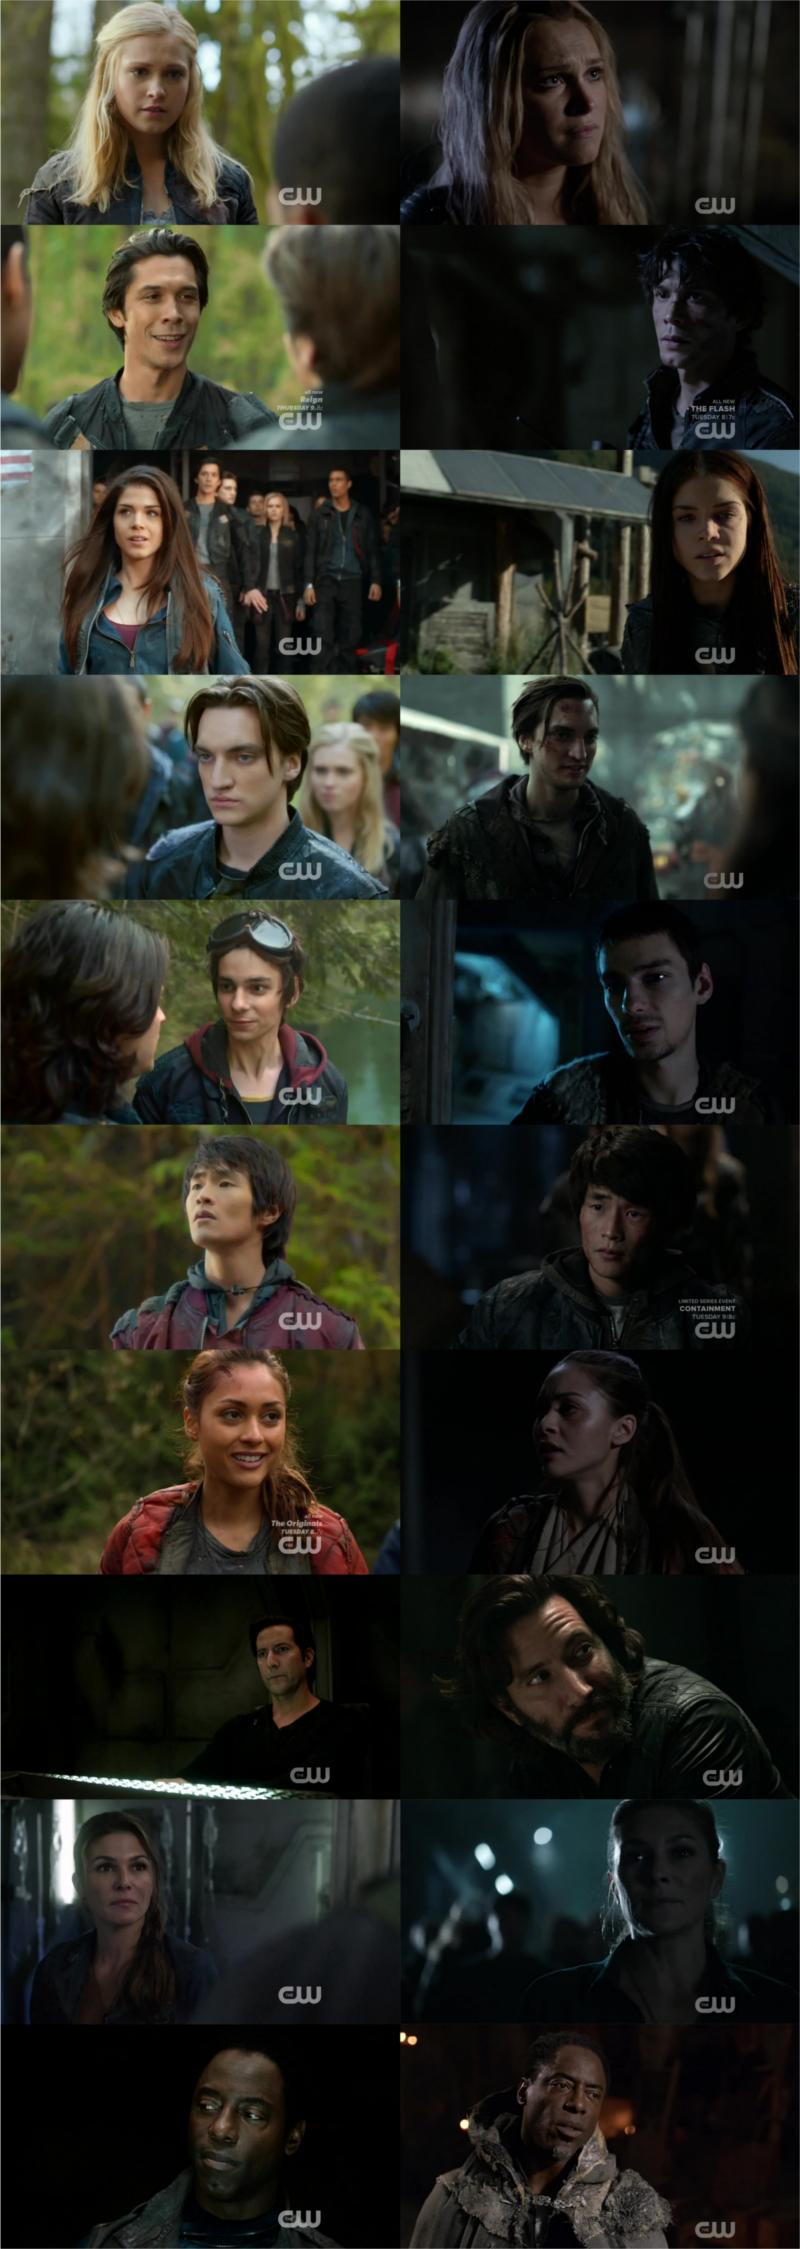 season 1 vs season 3, damn they've changed so much